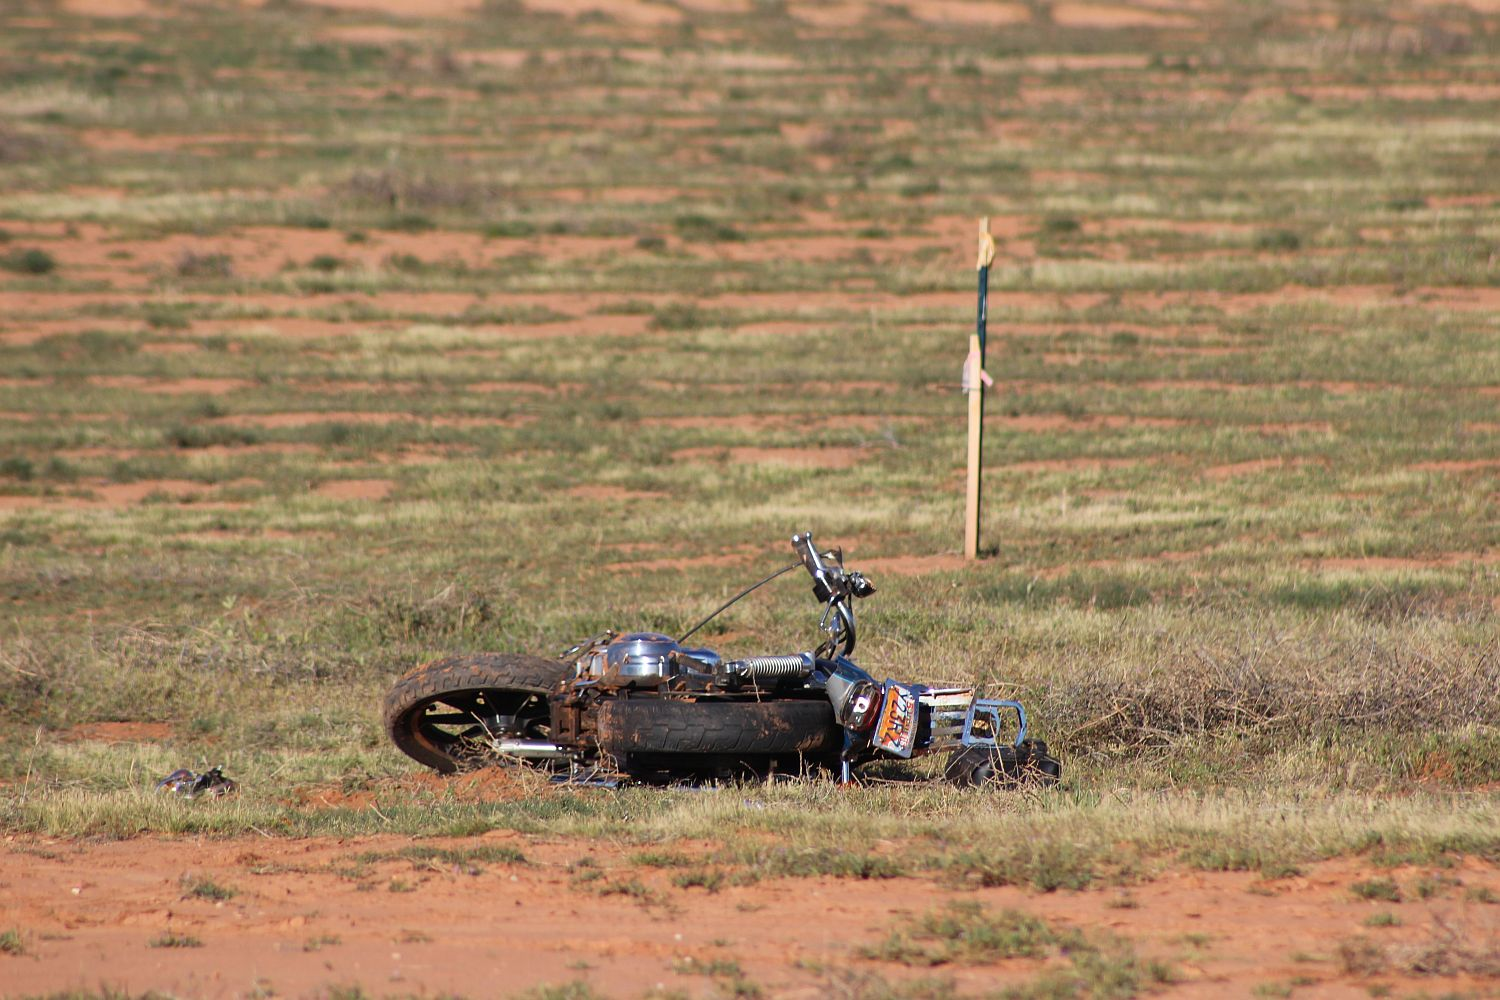 A motorcycle lays in a field after being wrecked Saturday morning. The rider lay in the field for over four hours before being discovered. Washington, Utah, April 16, 2016 | Photo by Ric Wayman, St. George News